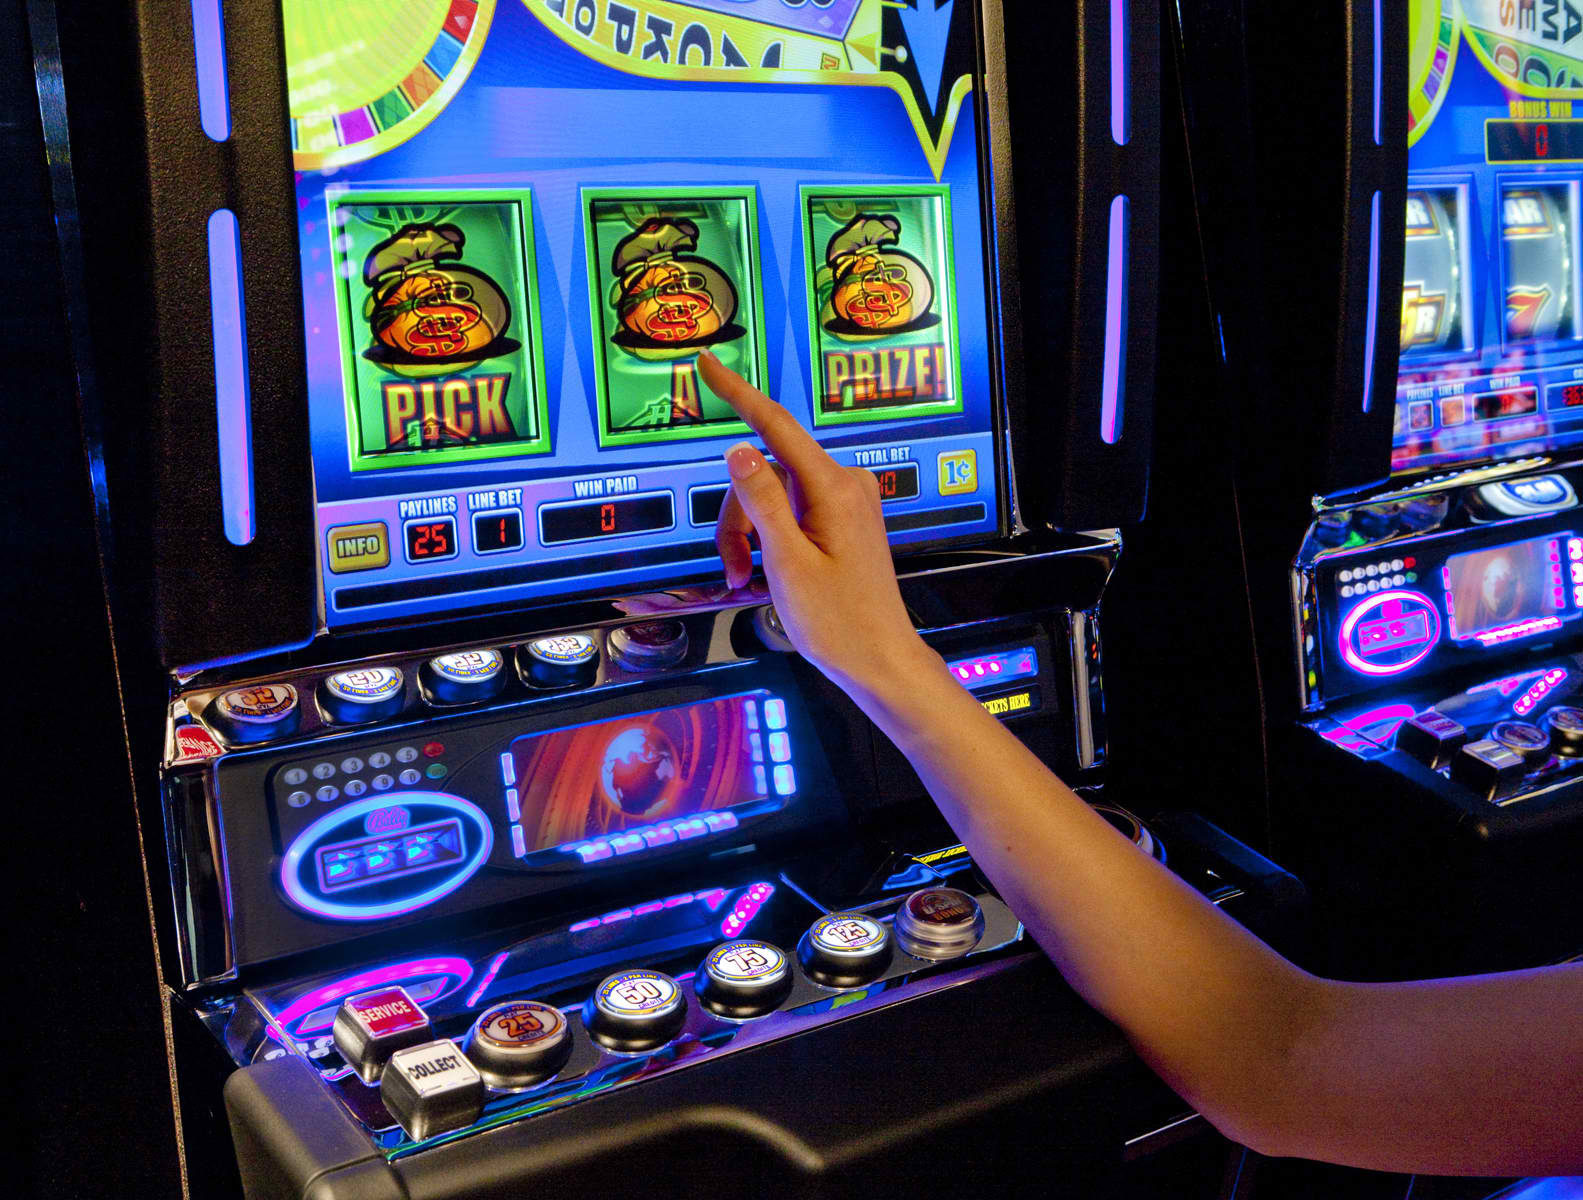 Popular online slot games